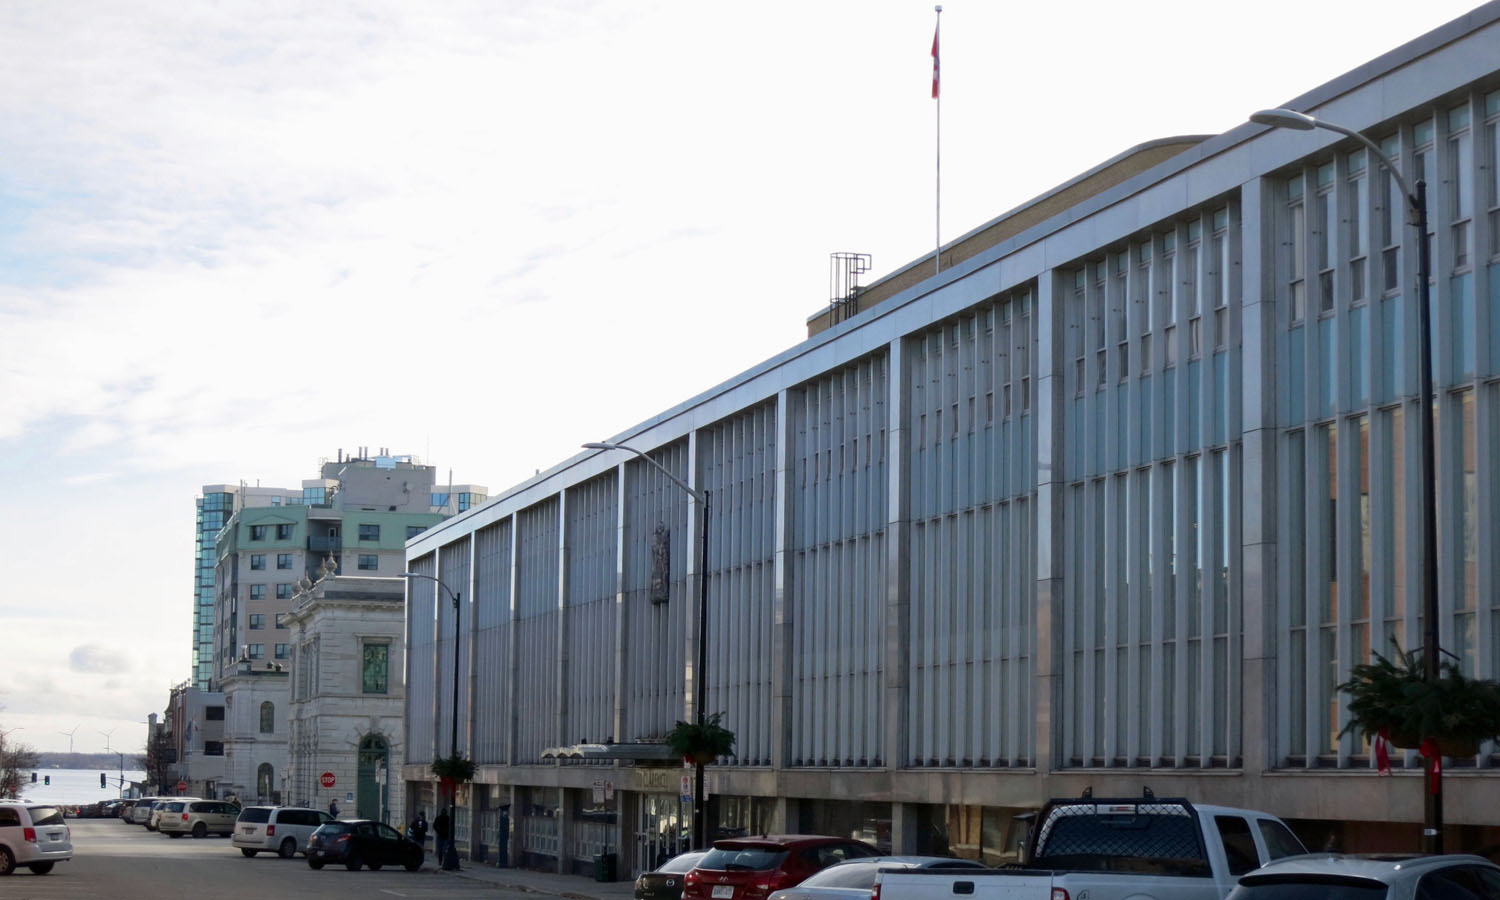 The monumental main facade runs the entire length of the block along Clarence St.